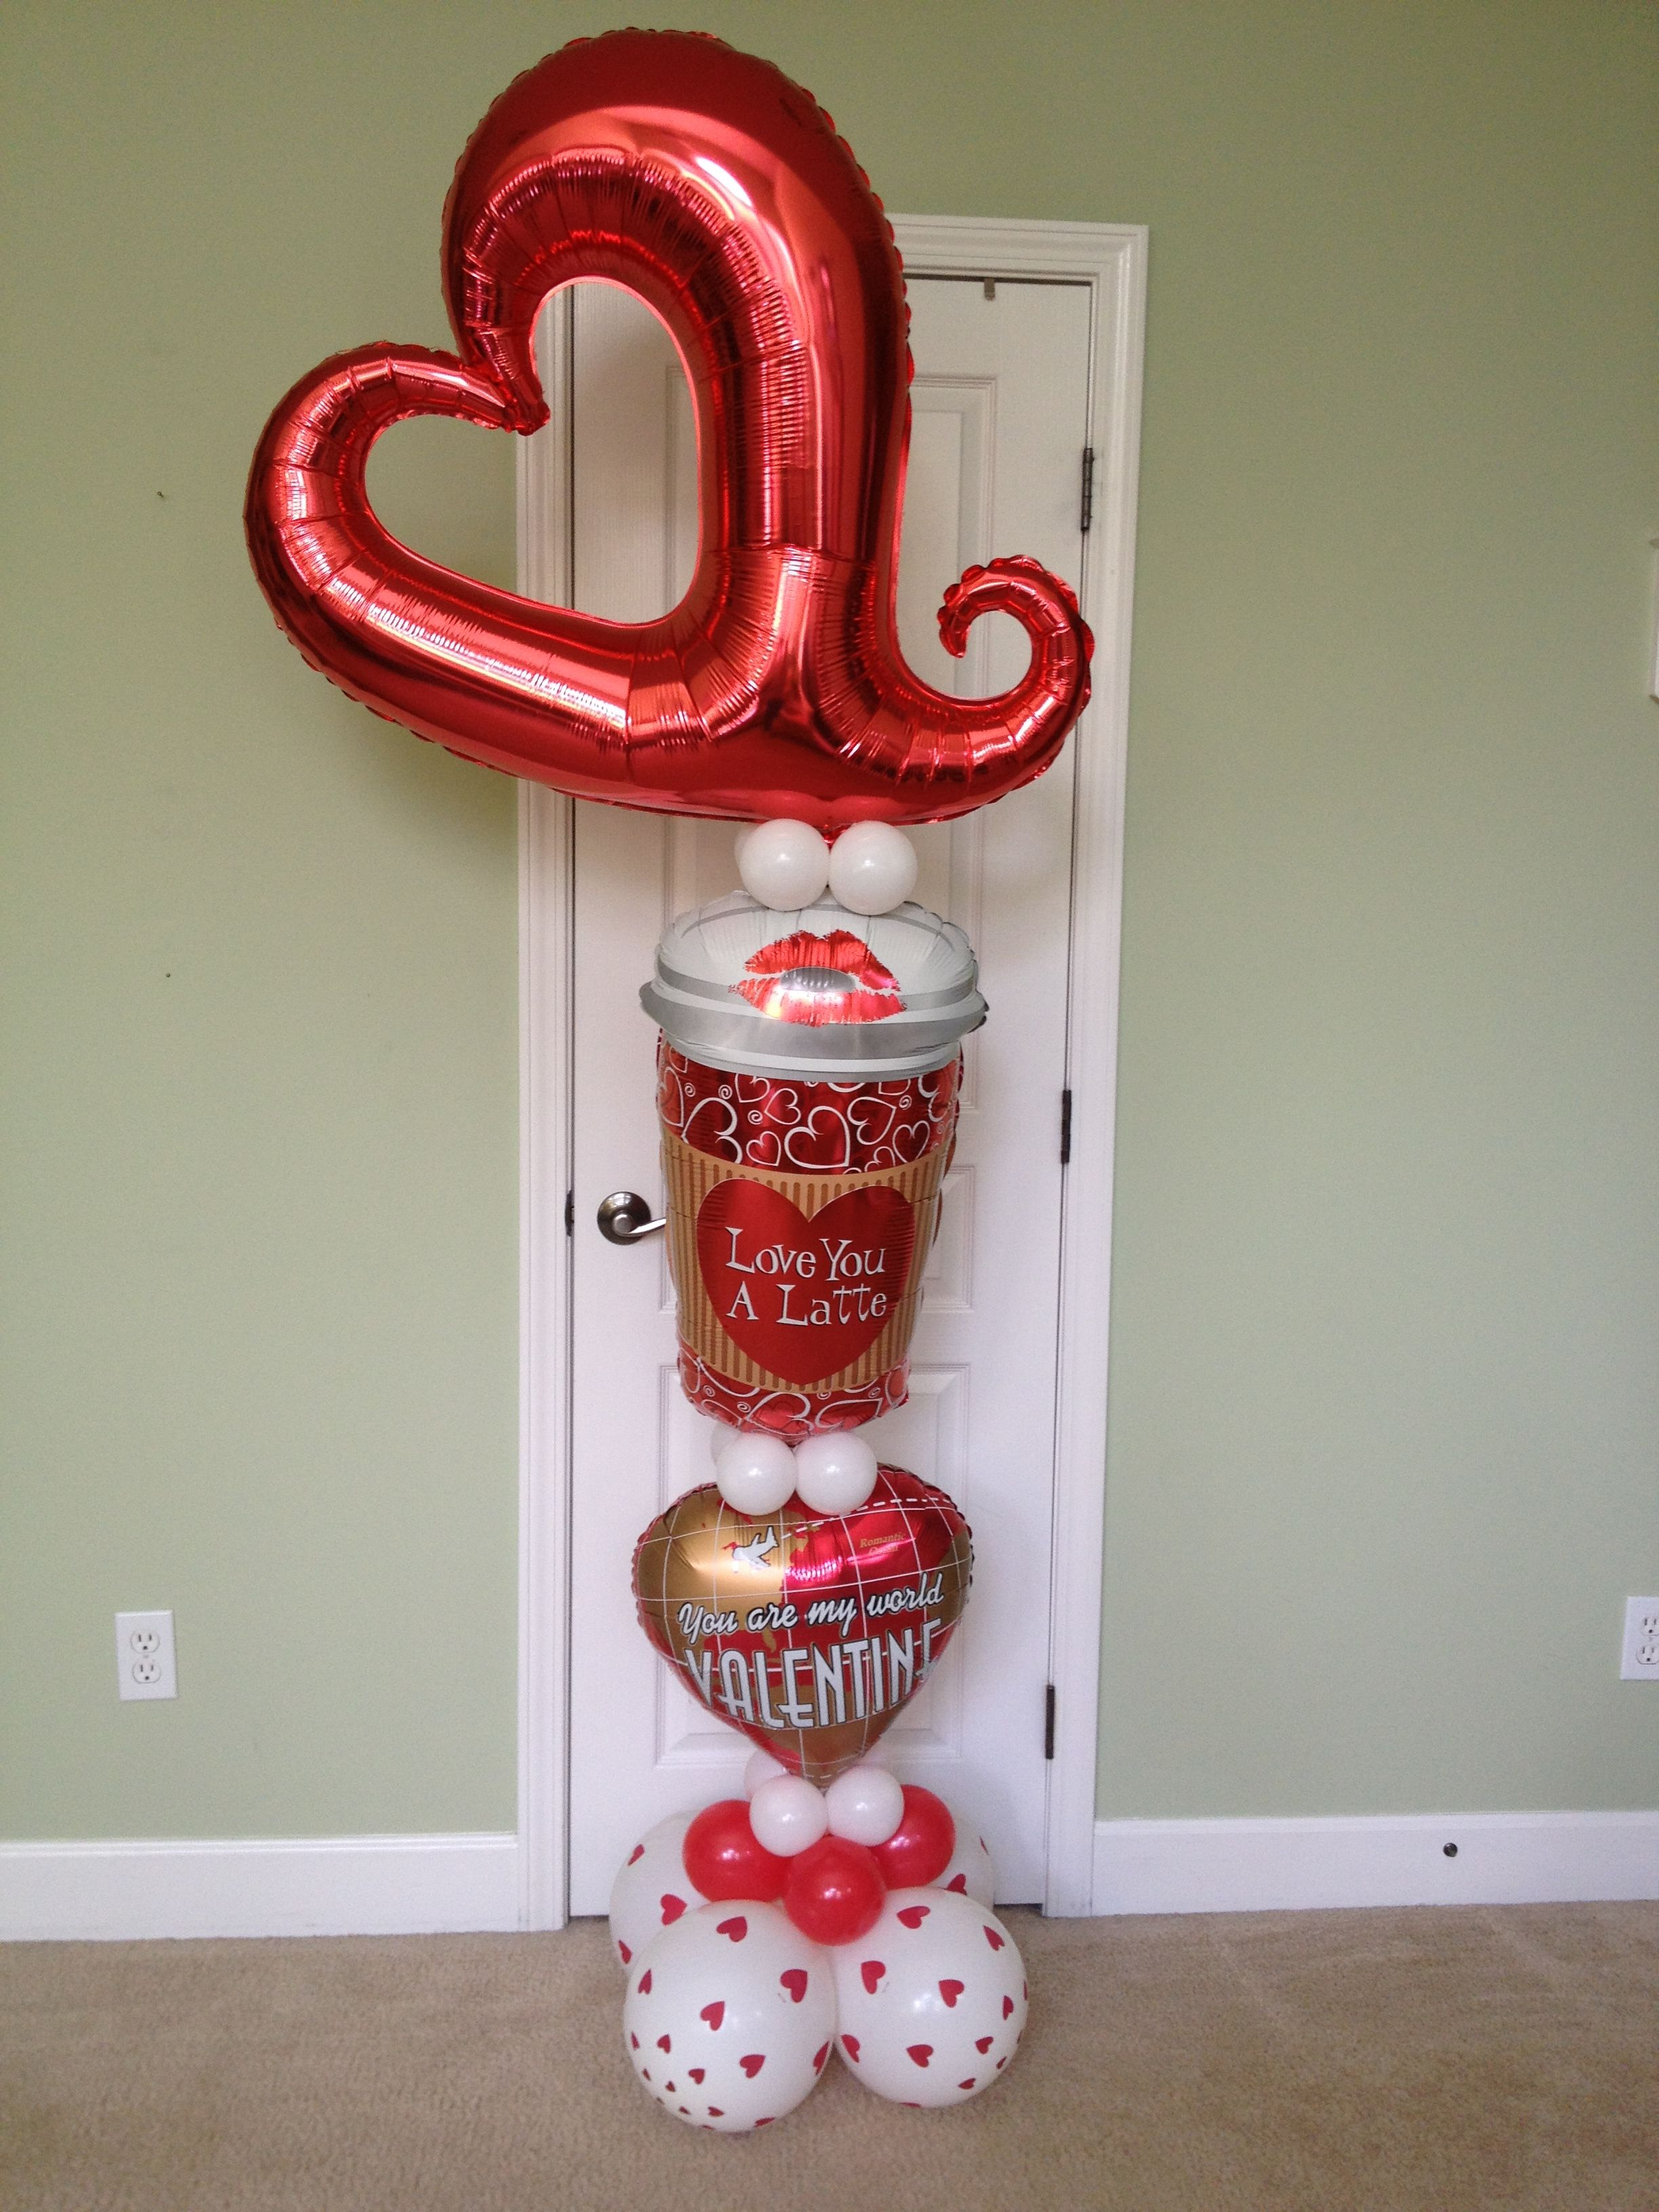 love you latte valentine balloon delivery | valentines day, Ideas